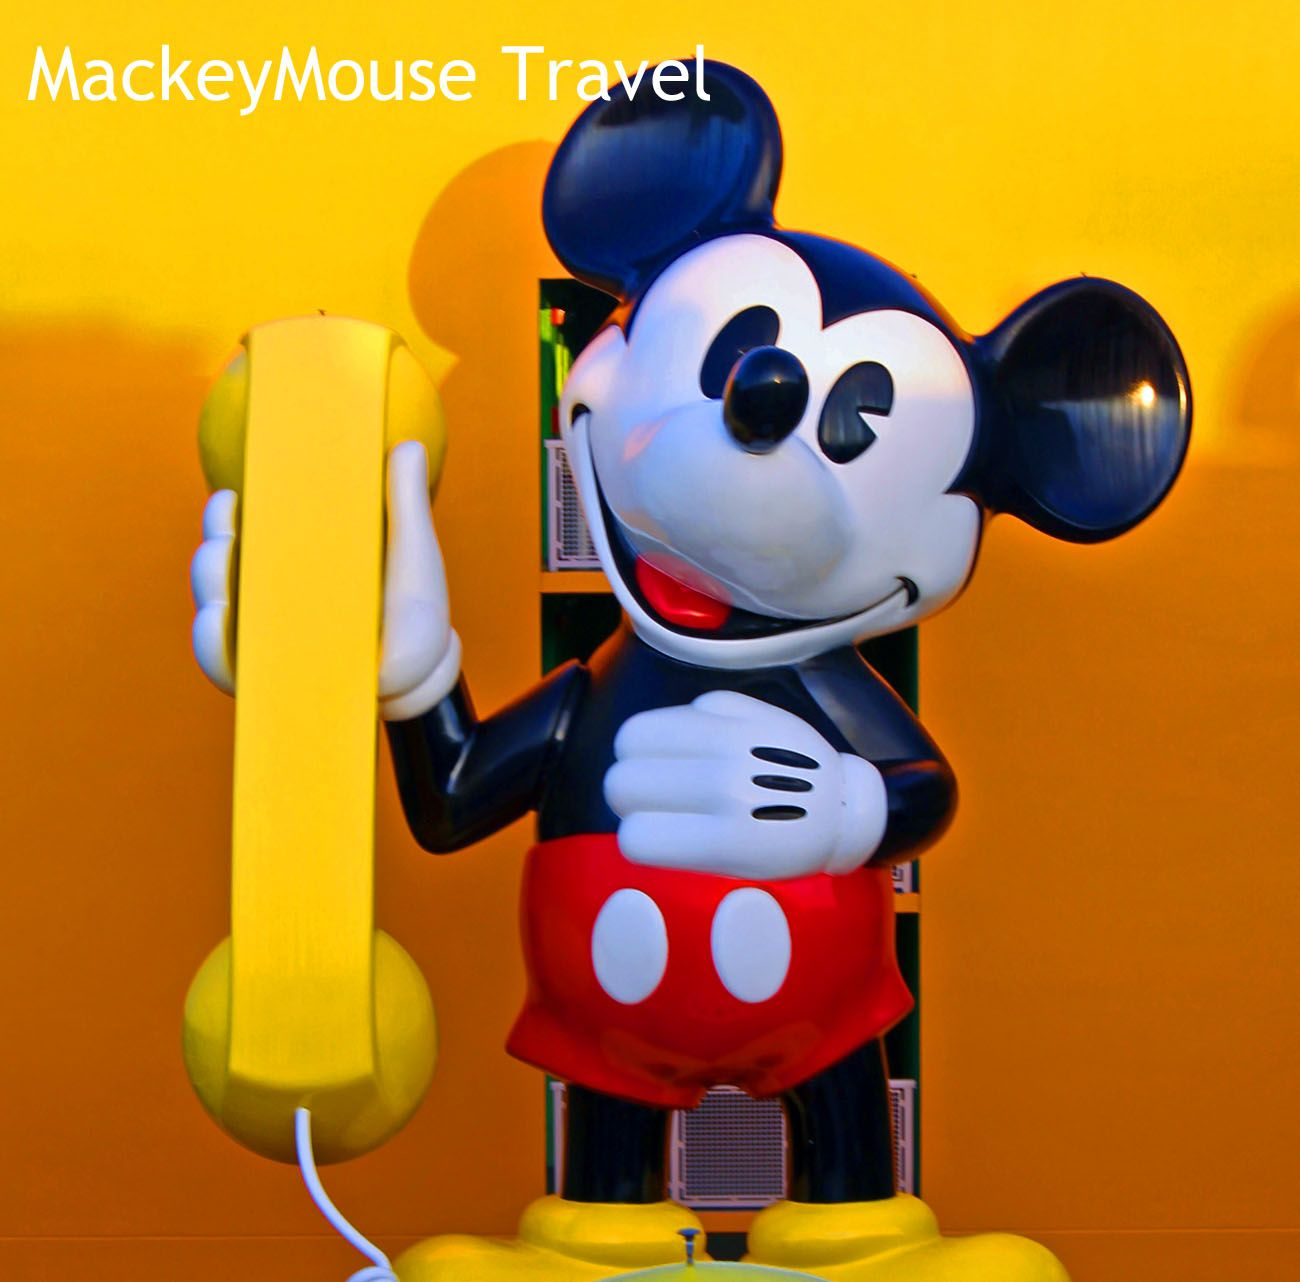 Want the BEST help with your Disney planning? Look no further! MackeyMouse Travel is ready to get started!! mackeymousetravel@yahoo.com or www.mackeymousetravel.com